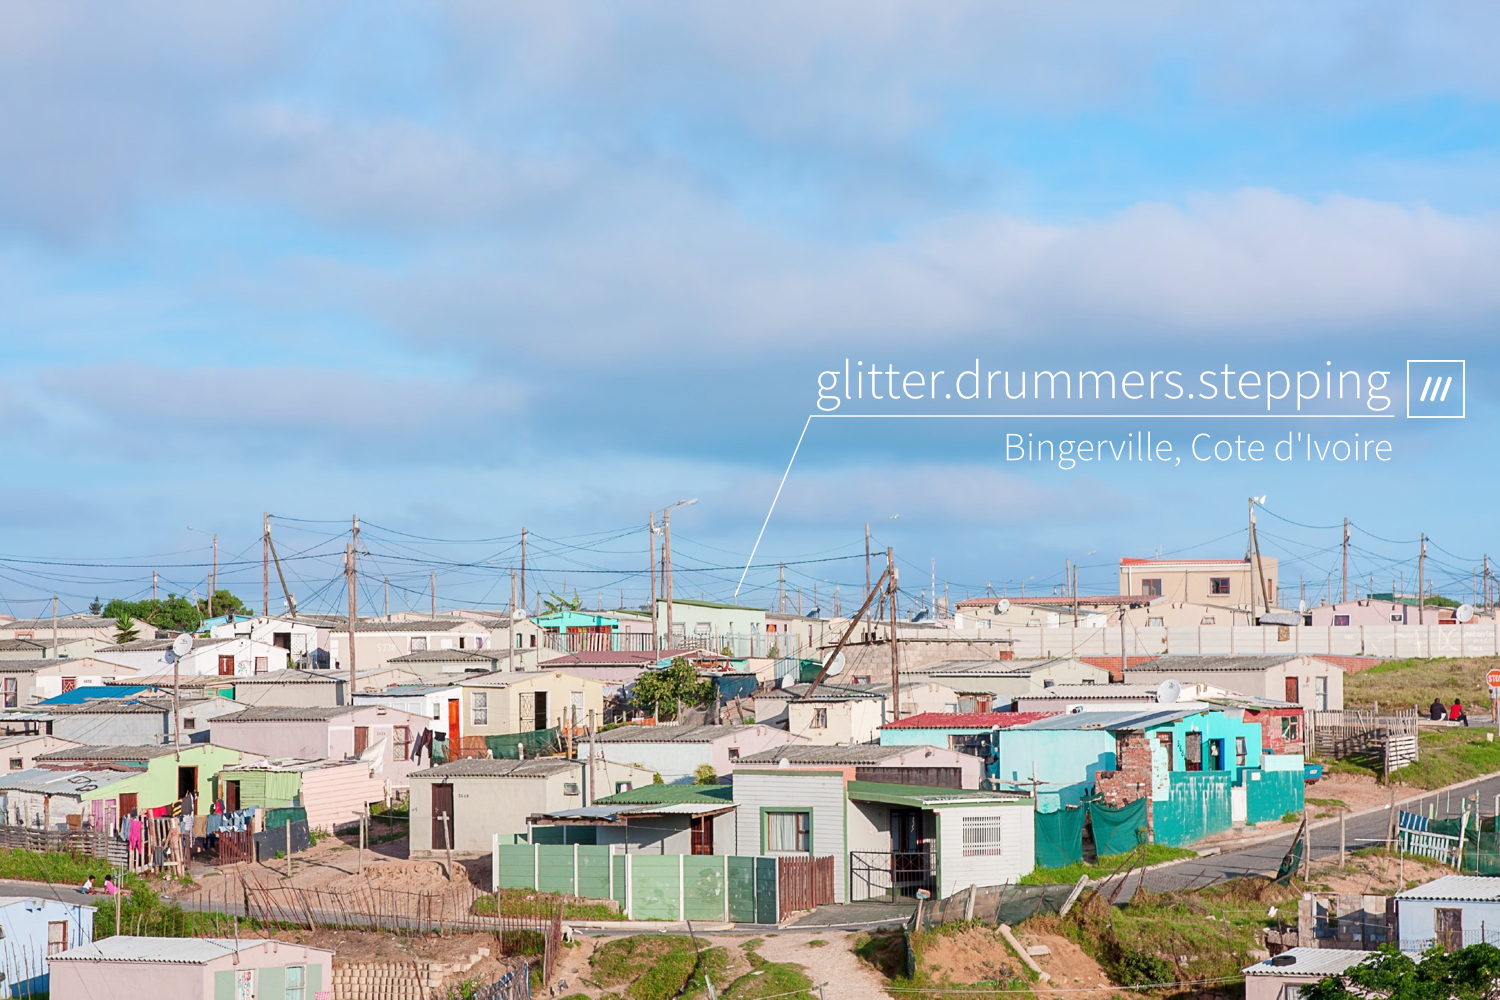 village of small colourful houses at 3 word address glitter.drummers.stepping